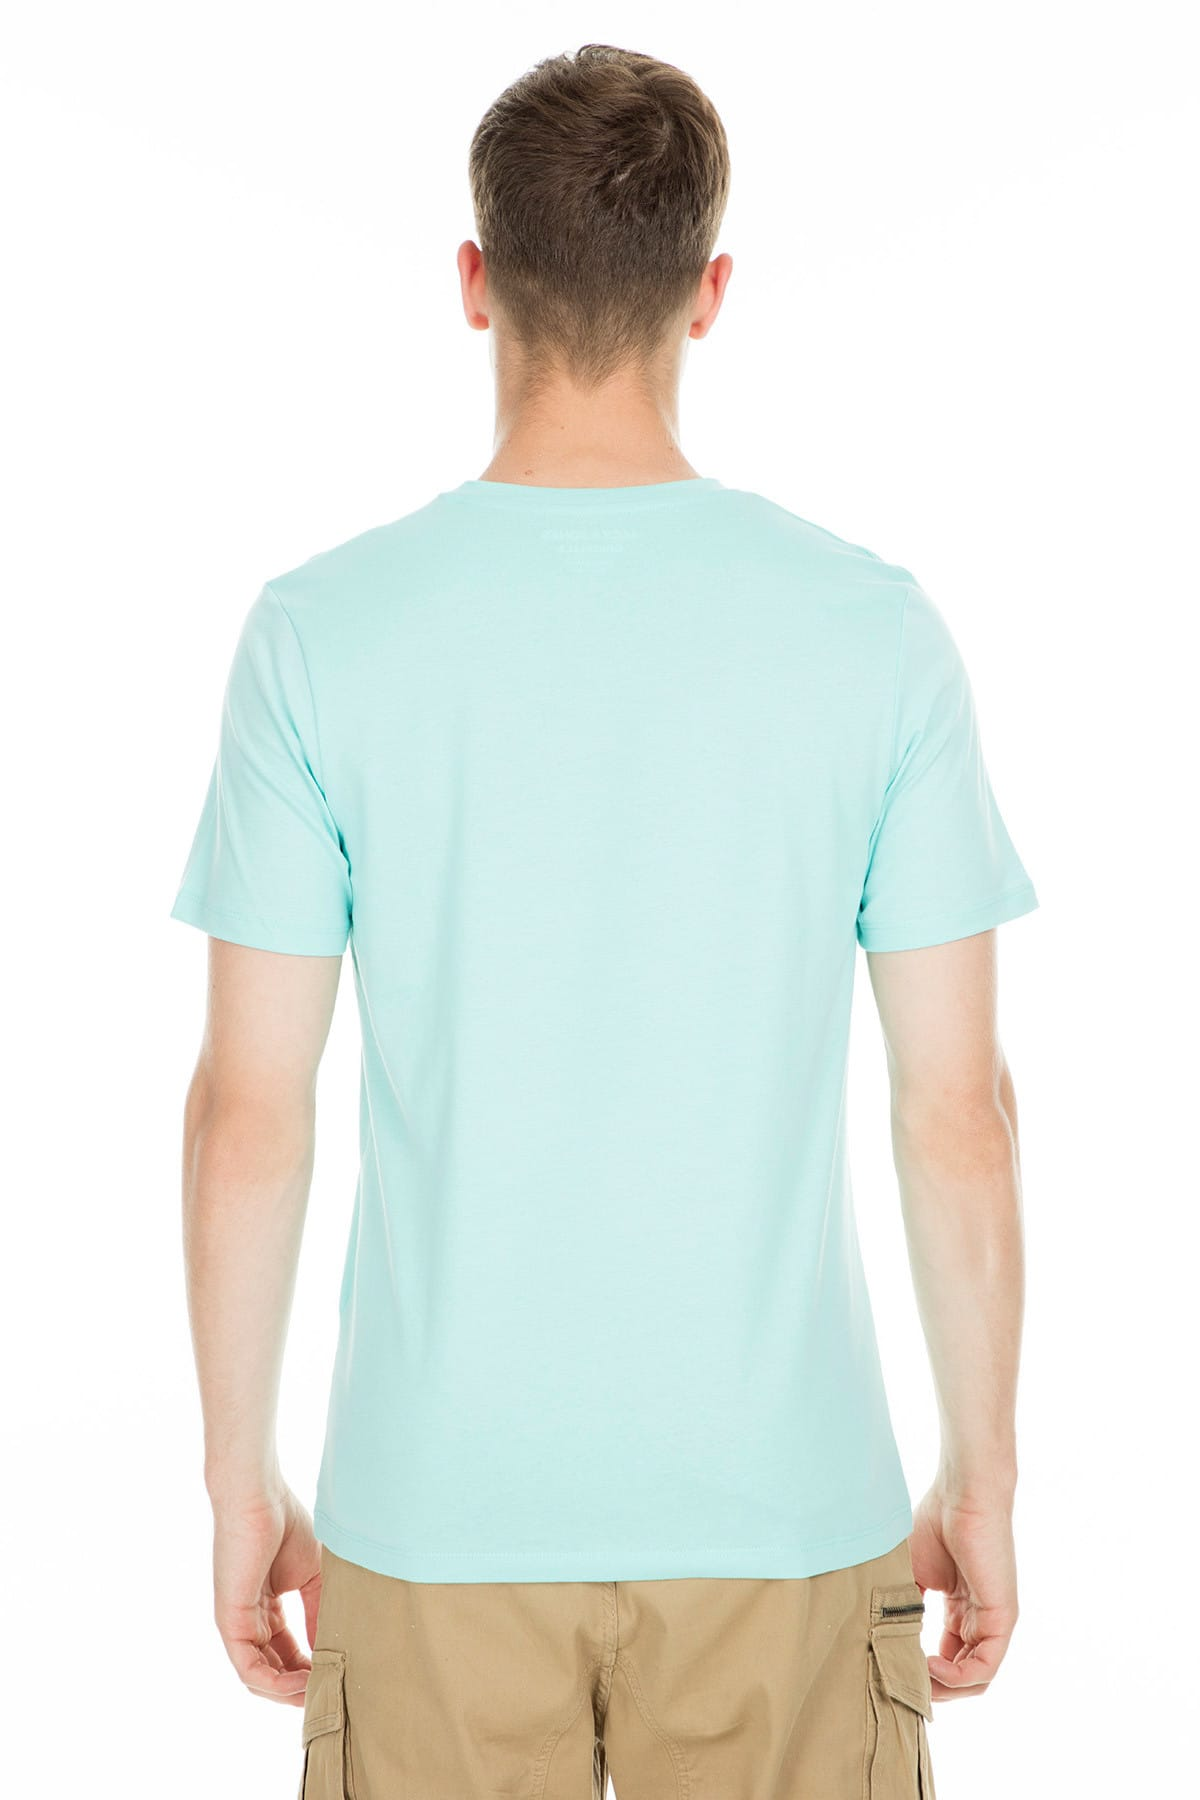 Jack & Jones T-Shirt - Belboy Originals Tee Ss Crew Neck 12157863 2